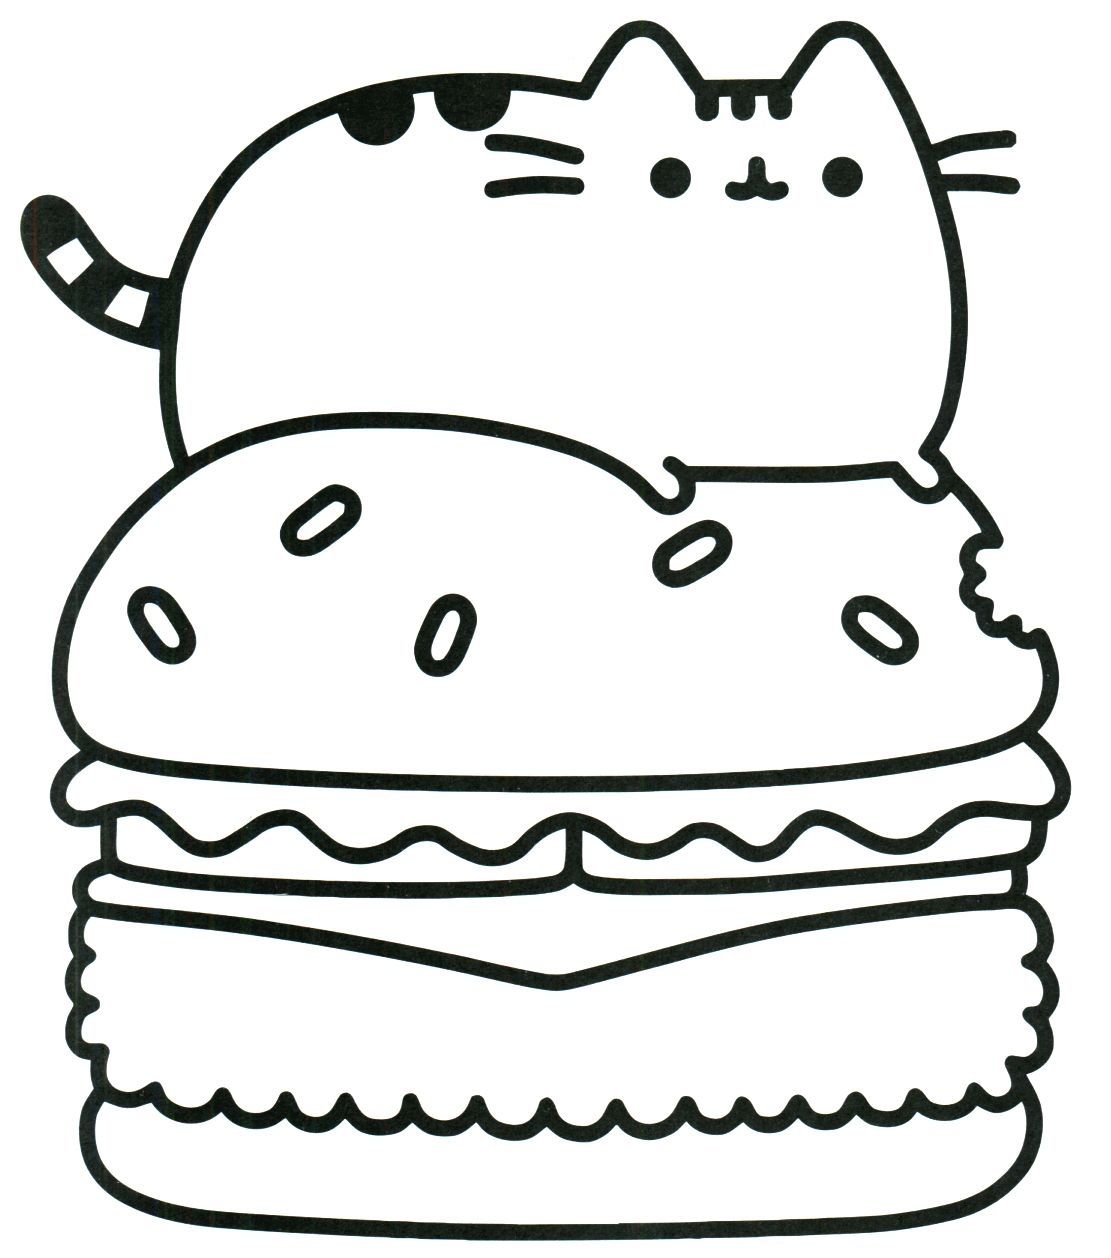 25 Inspired Photo Of Pusheen Cat Coloring Pages Entitlementtrap Com Cat Coloring Book Pusheen Coloring Pages Unicorn Coloring Pages